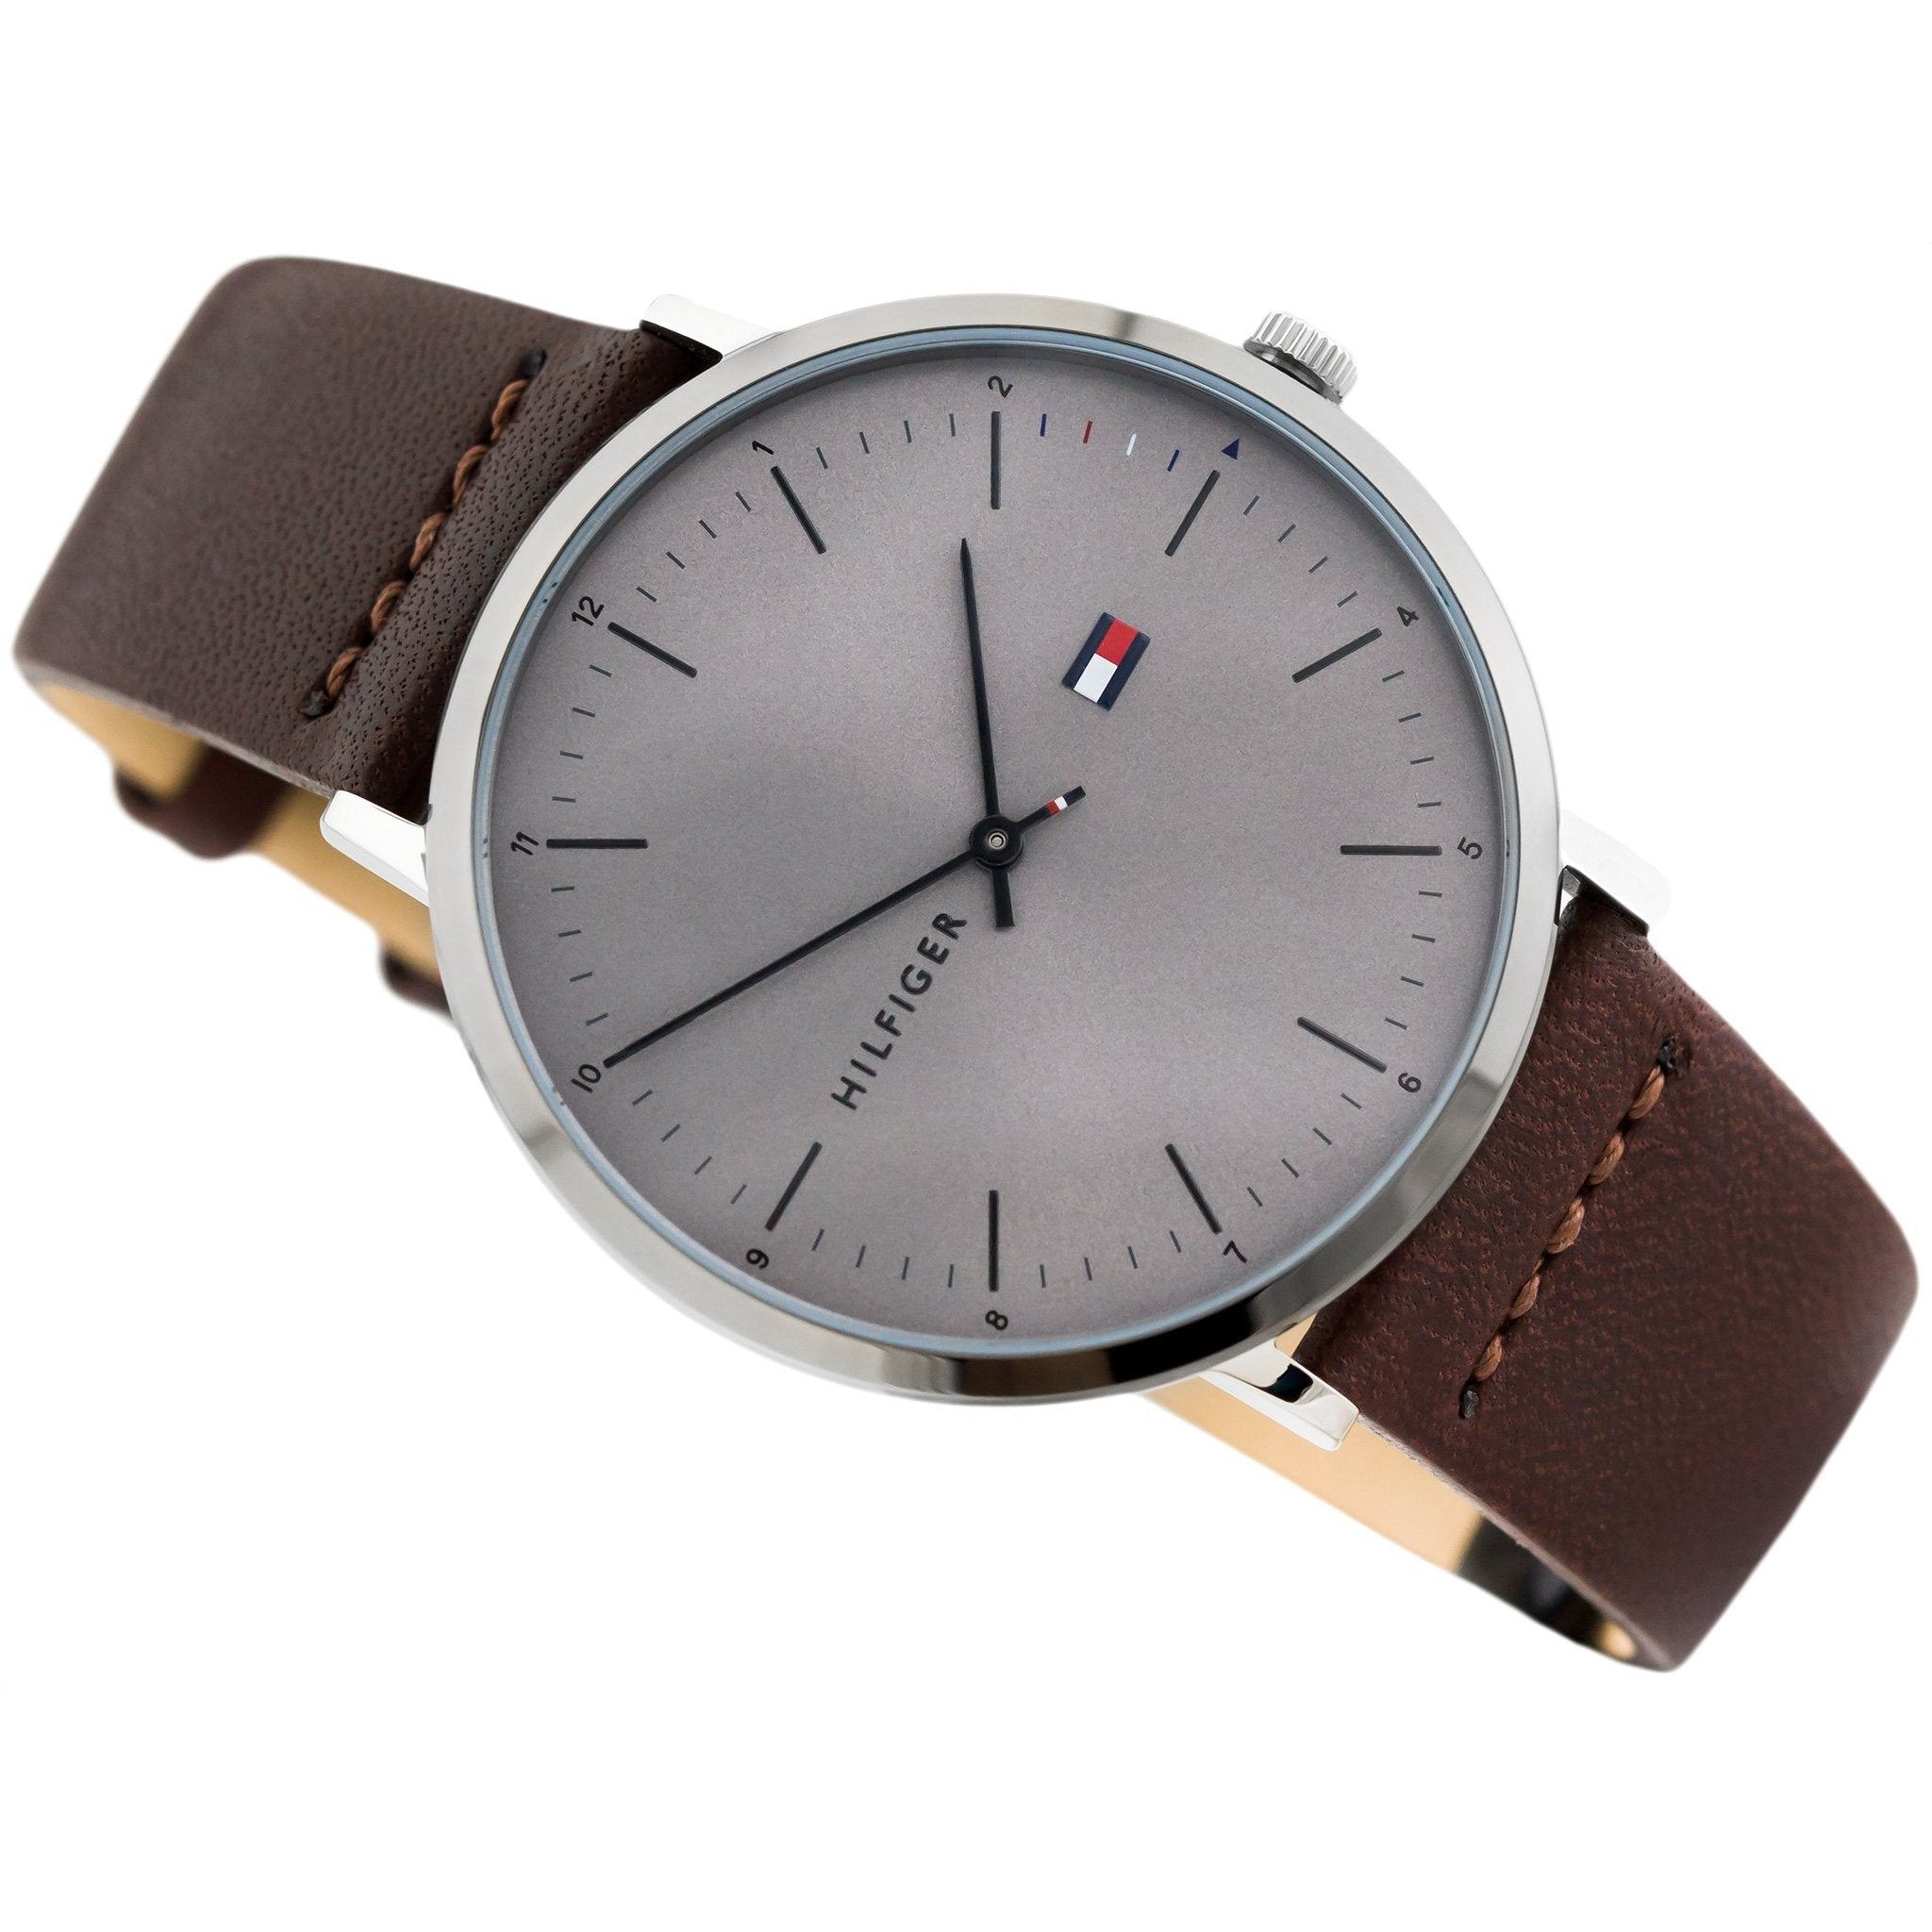 9ebecad4d Tommy Hilfiger Men's Casual Leather Watch - 1791463 – The Watch ...